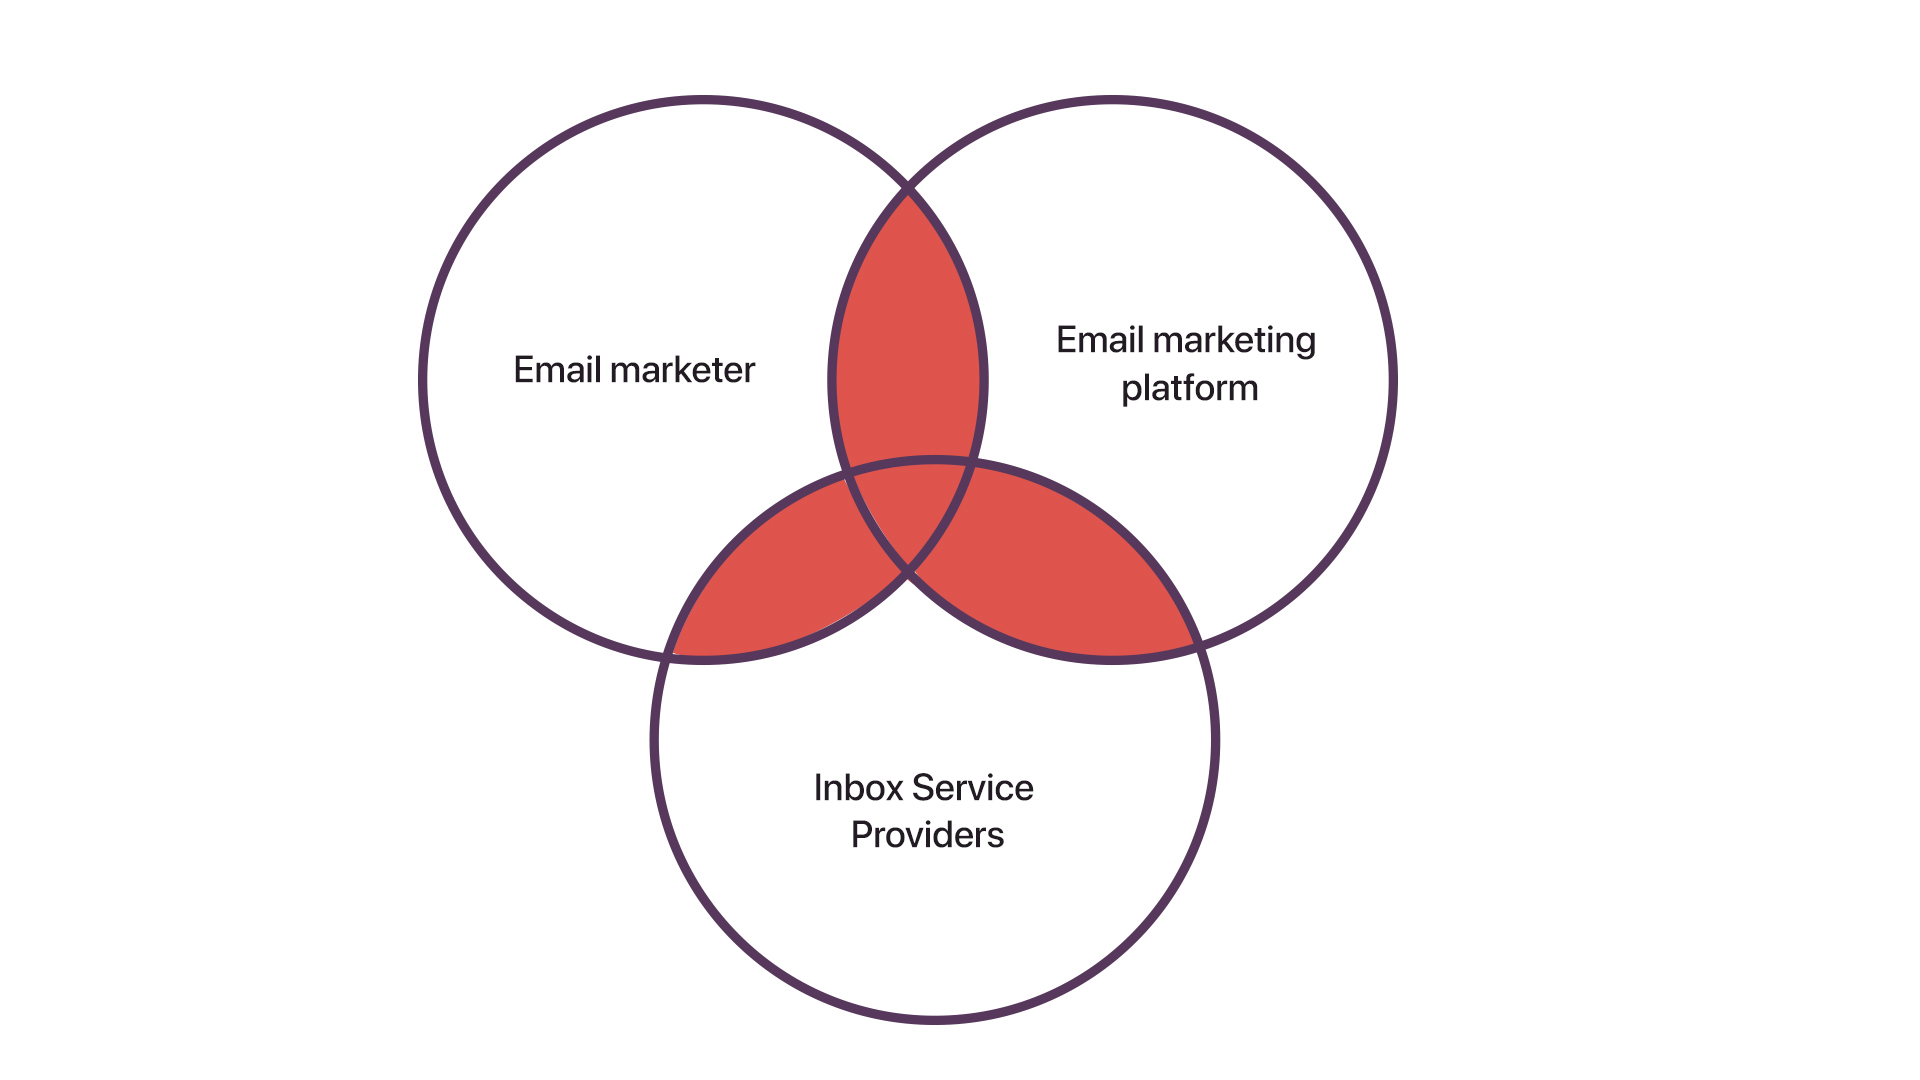 Participants of email marketing process